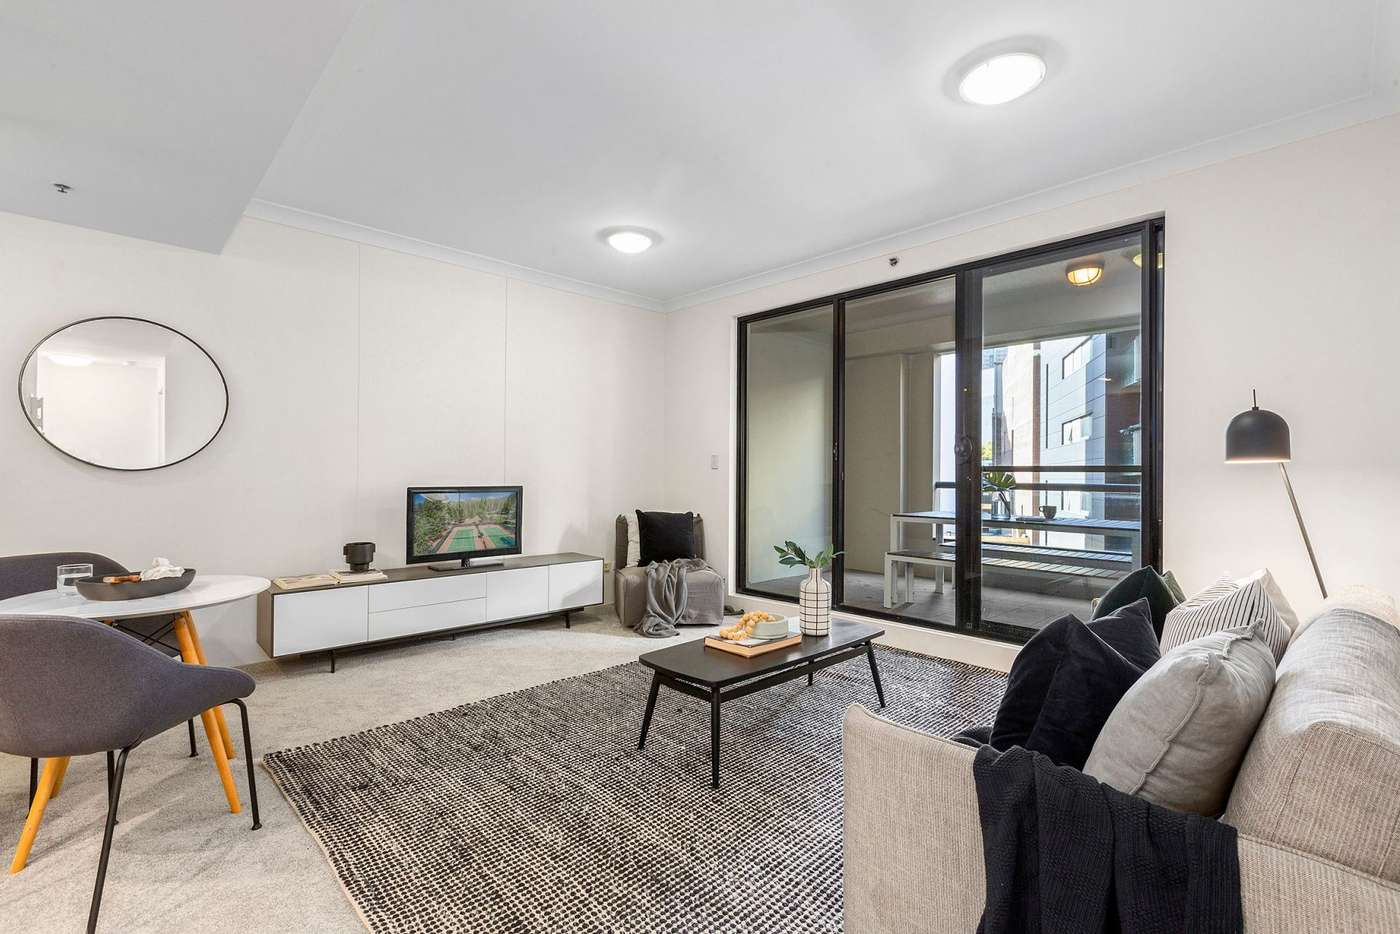 Main view of Homely apartment listing, 411/242 Elizabeth Street, Surry Hills NSW 2010